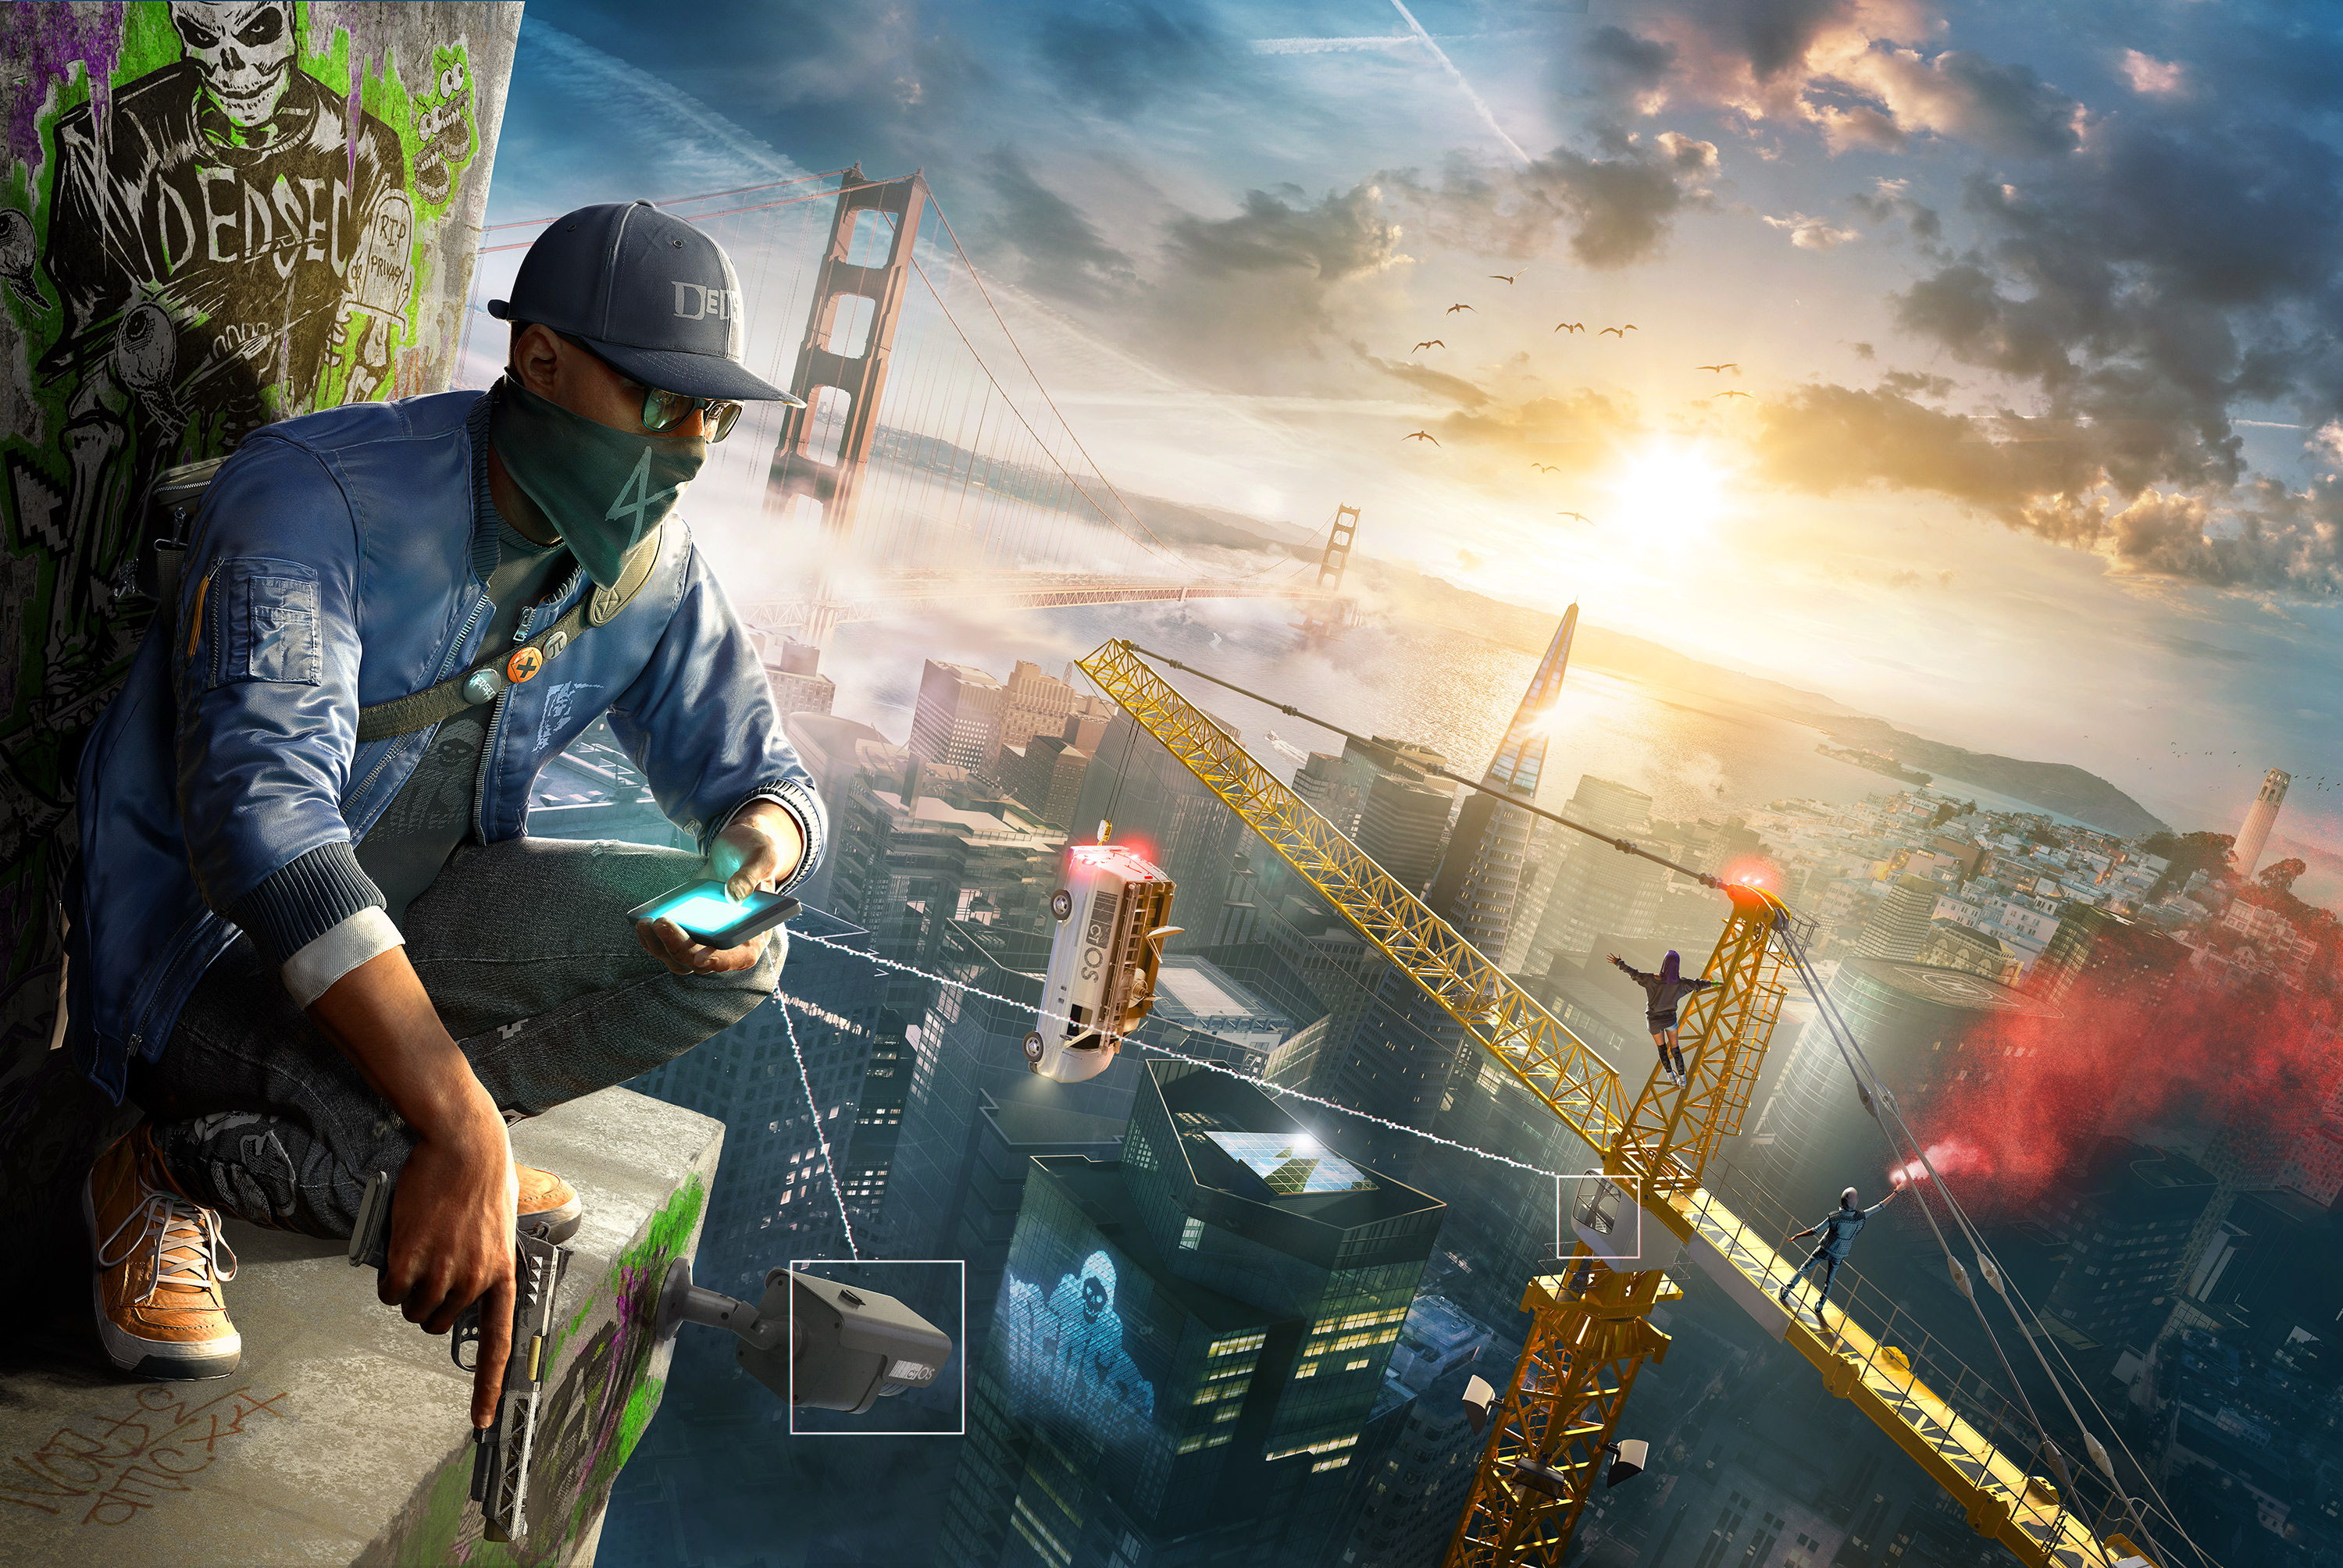 watch dogs 2 4k widescreen desktop wallpaper 1343